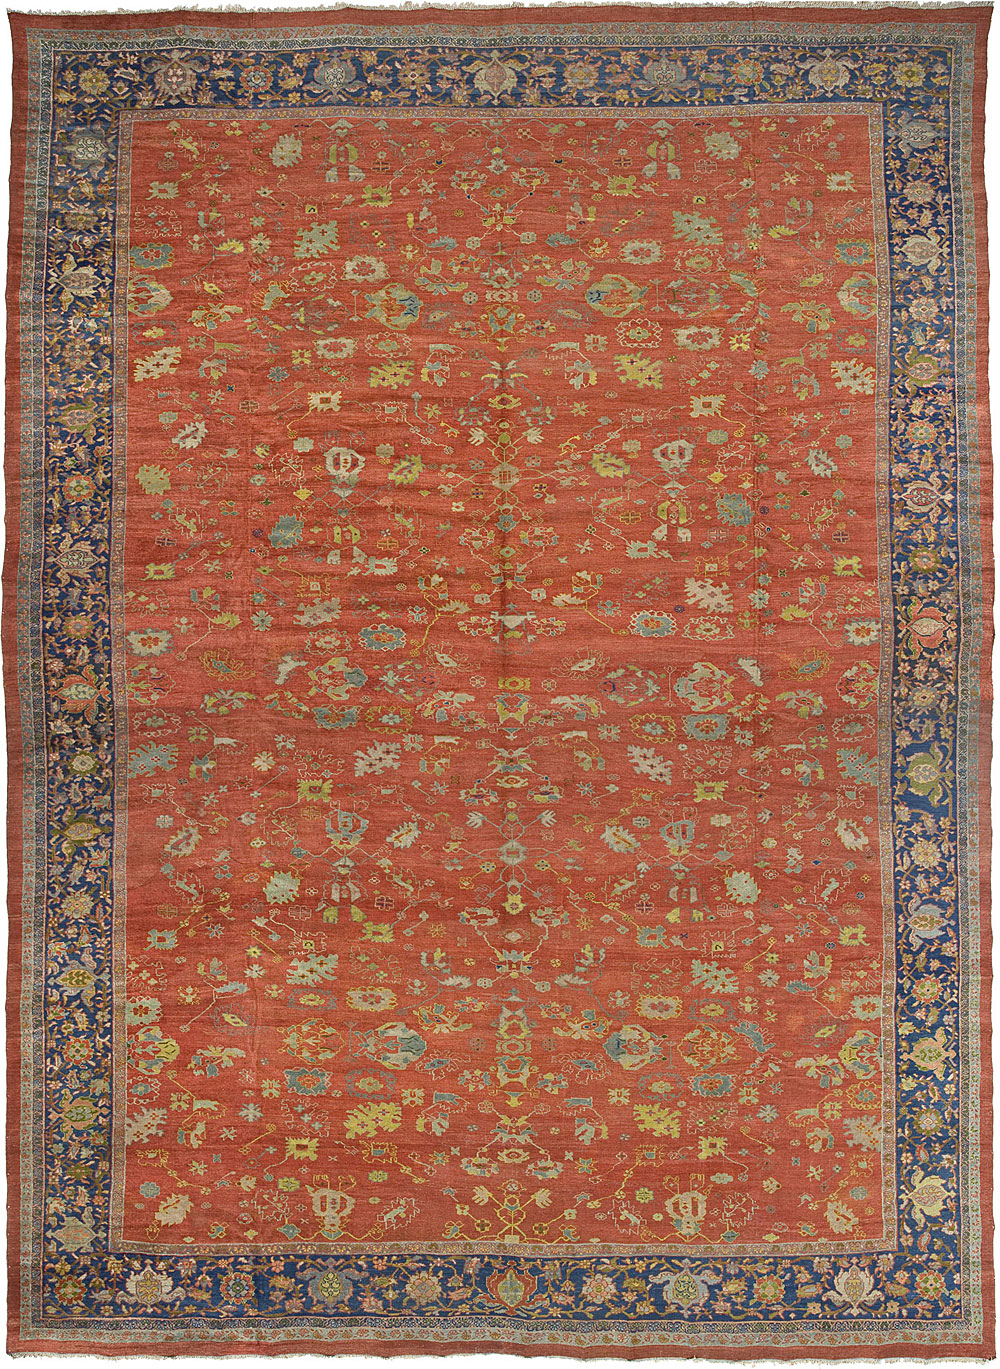 "Mahal Carpet 24' 8"" x 18' 6"""